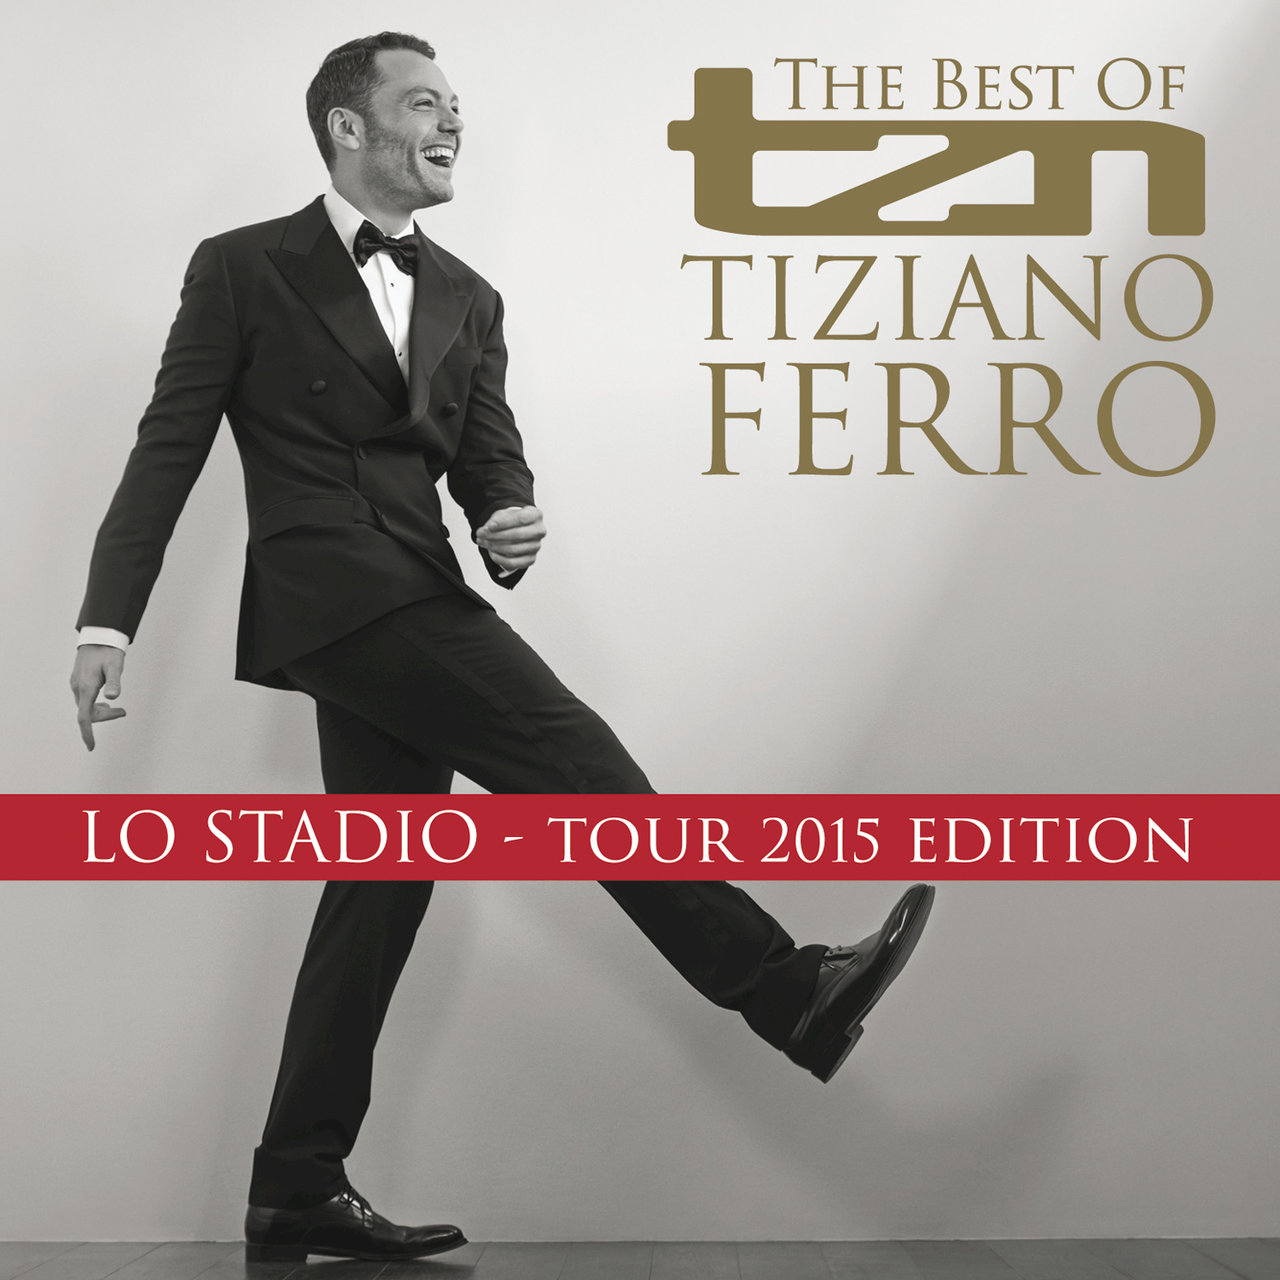 TZN -The Best Of Tiziano Ferro (Lo Stadio Tour 2015 Edition)